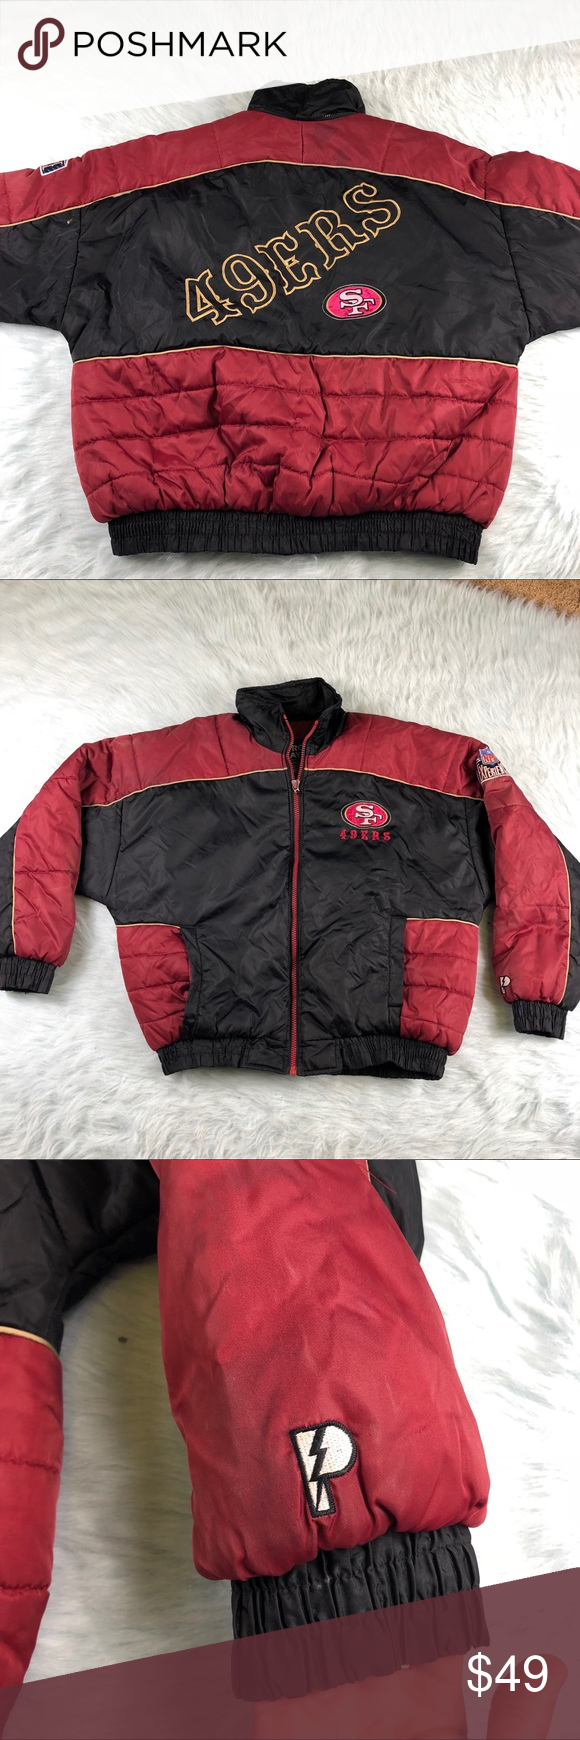 best sneakers 92101 a505b Vintage Pro Player NFL 49ers Puffer Jacket Mens XL Men's ...